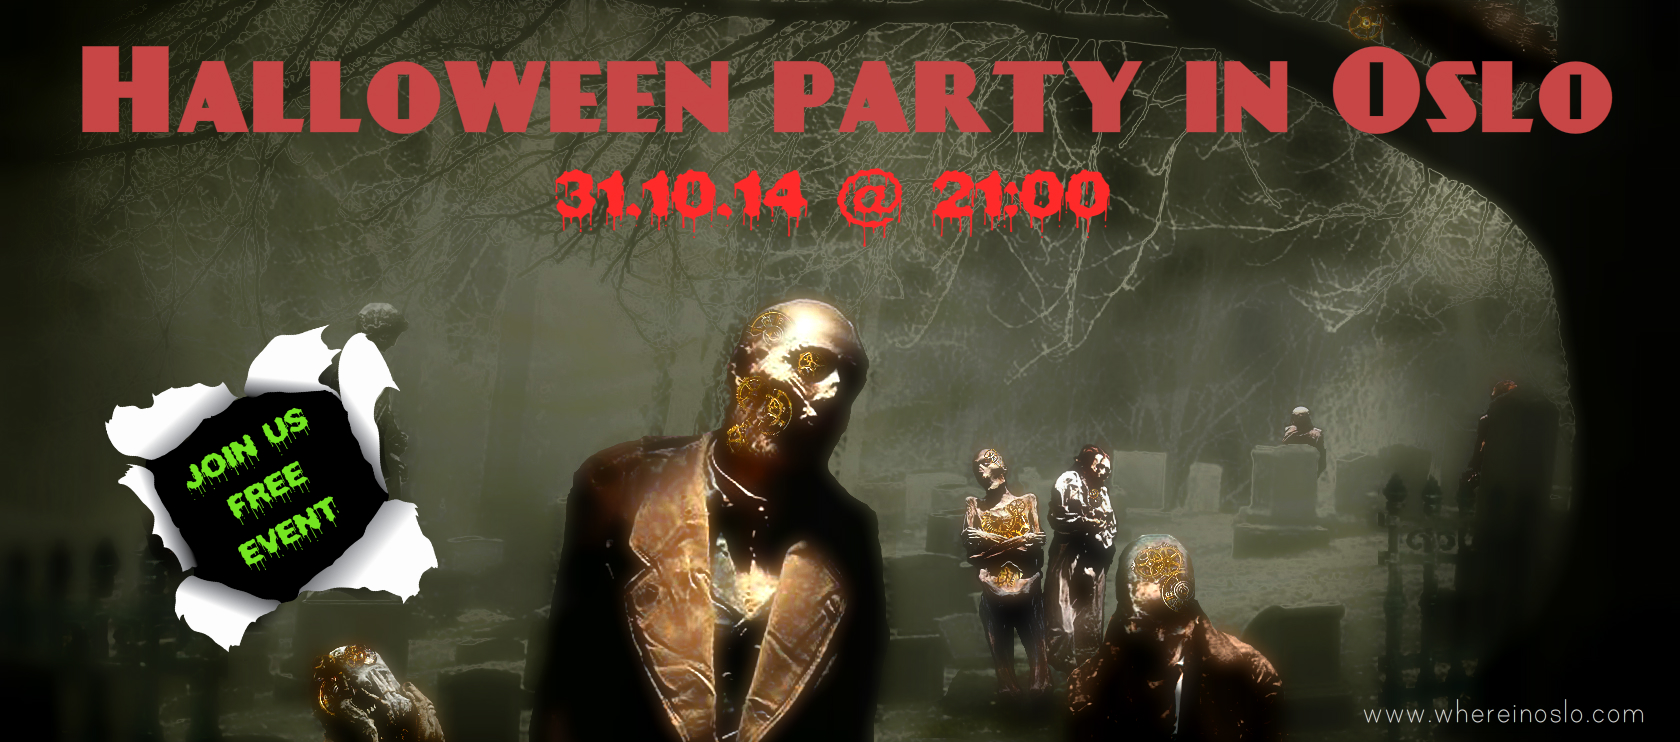 Halloween party in Oslo 2014